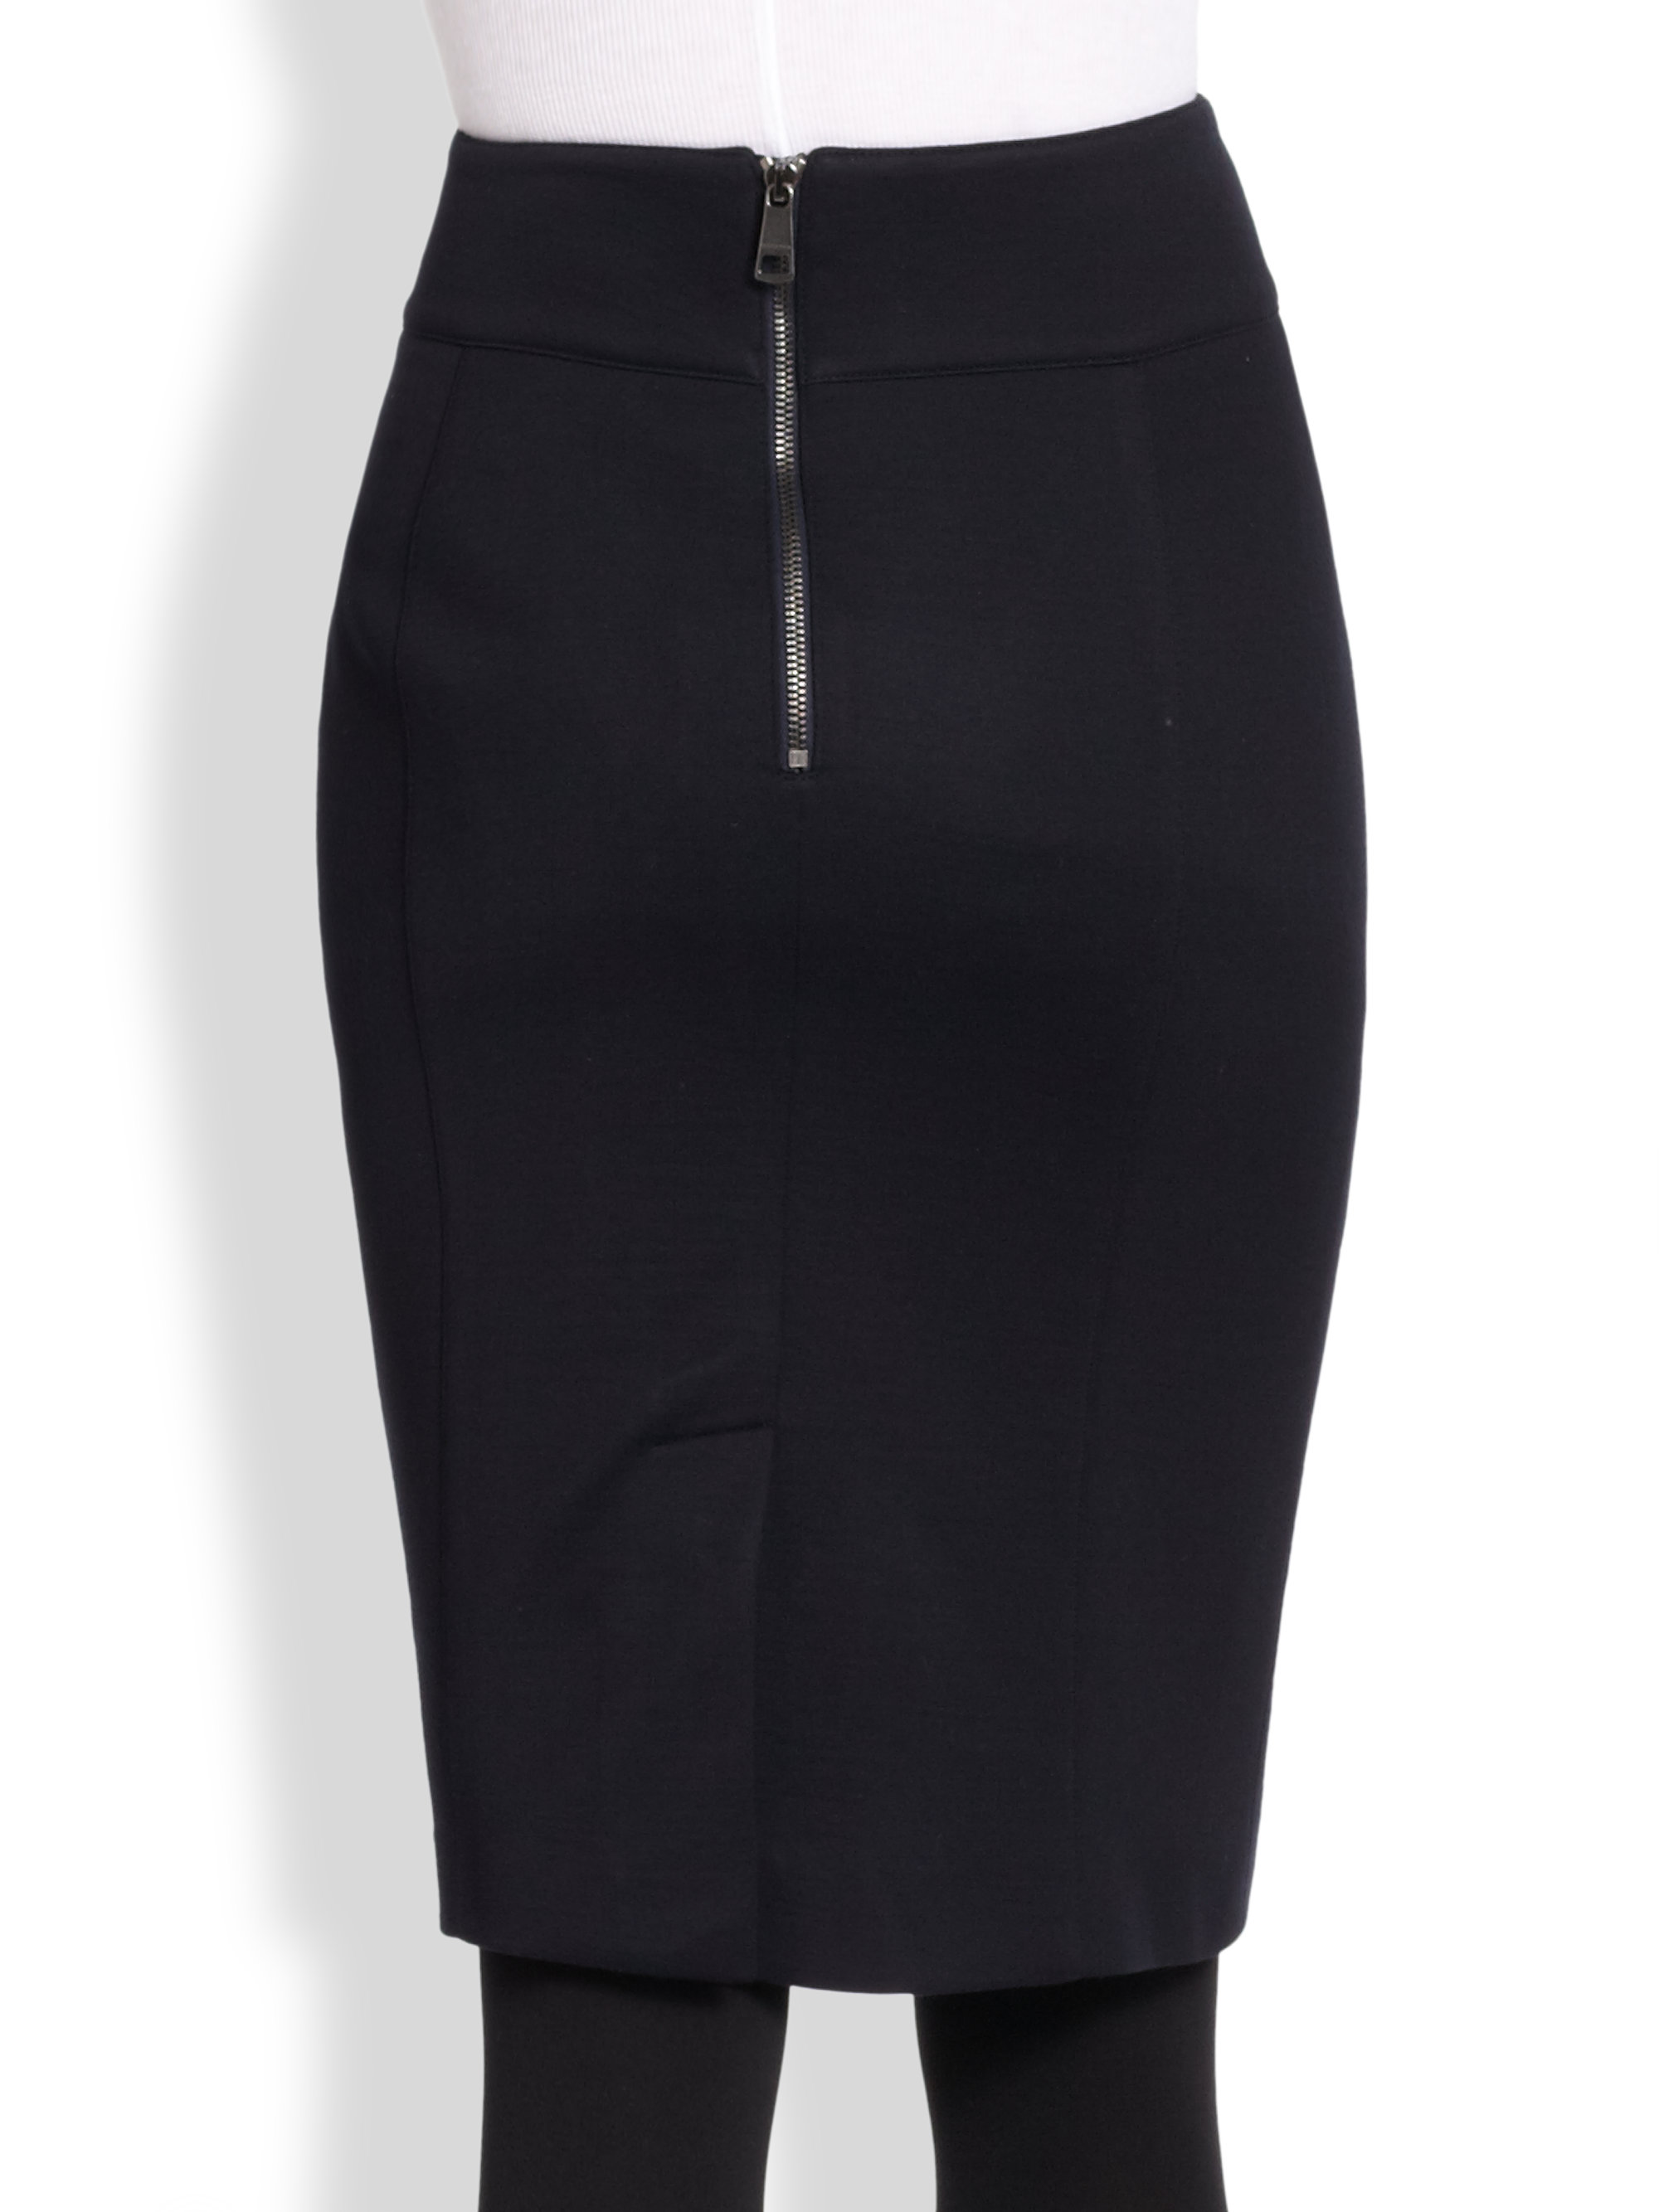 burberry jersey pencil skirt in black lyst